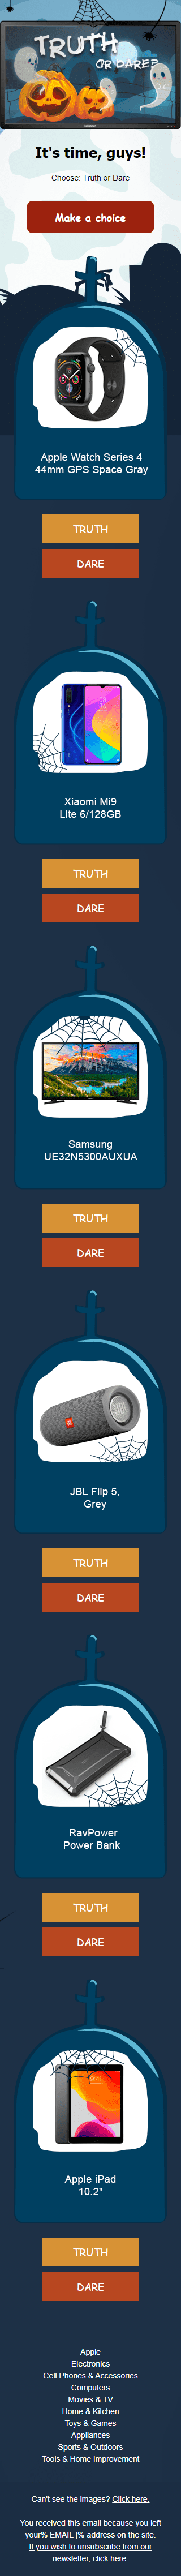 Halloween Email Template «Make Your Choice: Truth Or Action!» for Gadgets industry mobile view